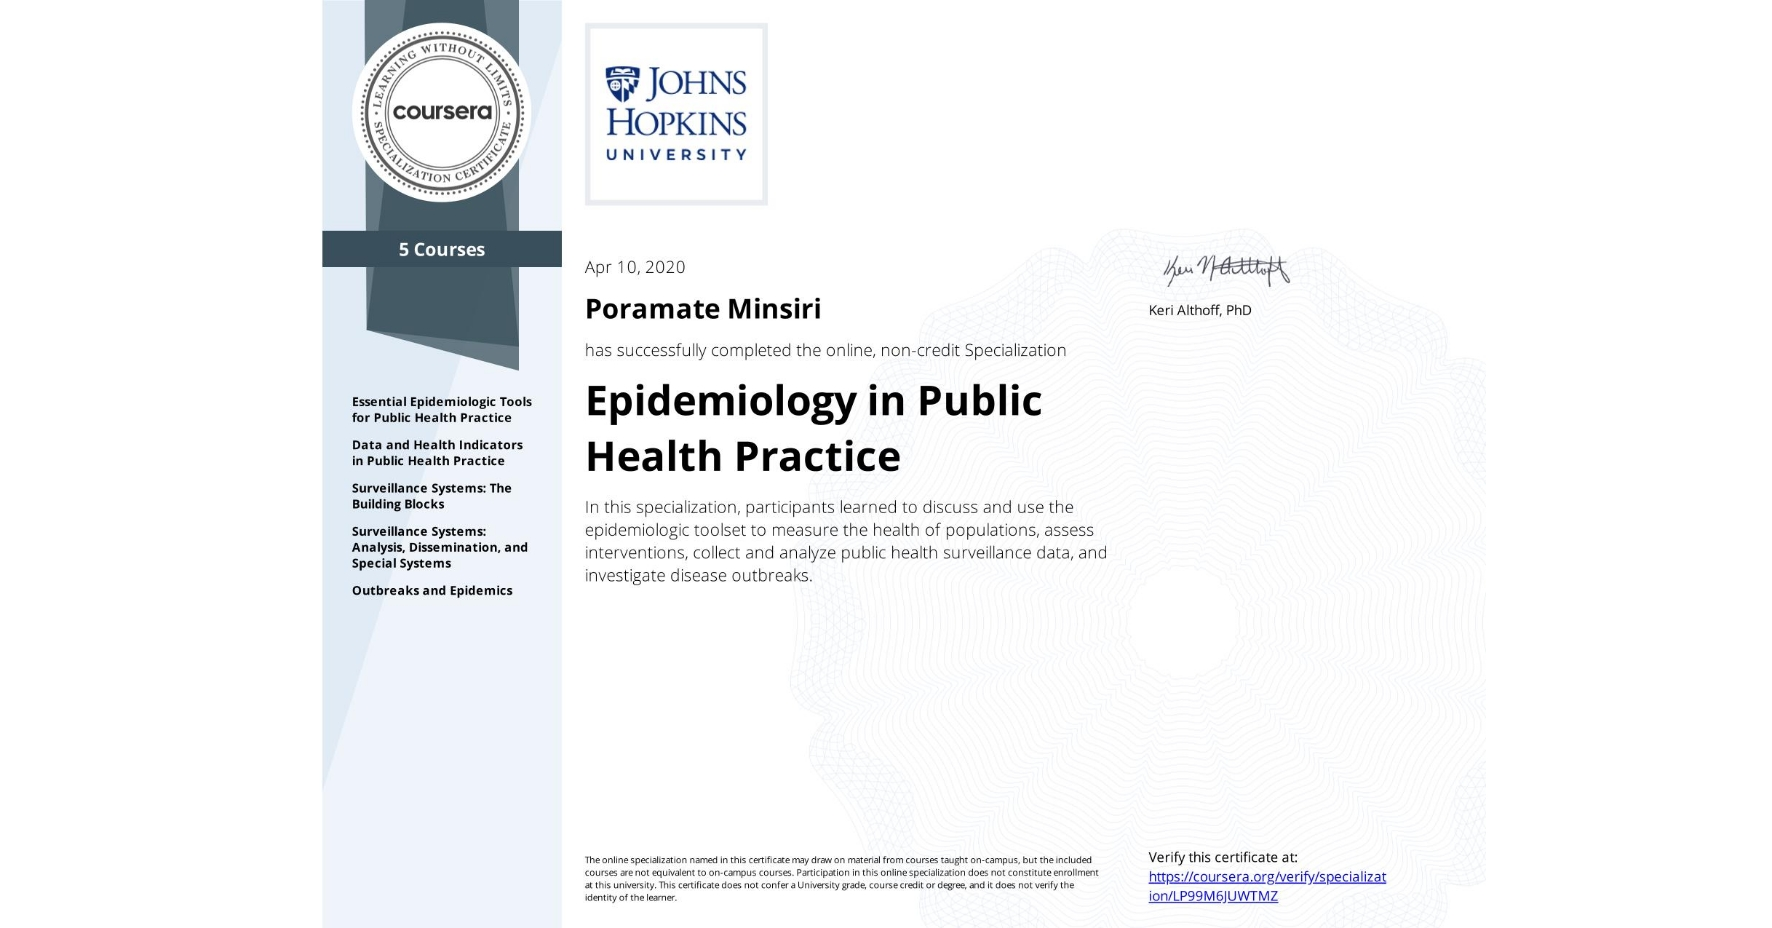 View certificate for Poramate Minsiri, Epidemiology in Public Health Practice, offered through Coursera. In this specialization, participants learned to discuss and use the epidemiologic toolset to measure the health of populations, assess interventions, collect and analyze public health surveillance data, and investigate disease outbreaks.